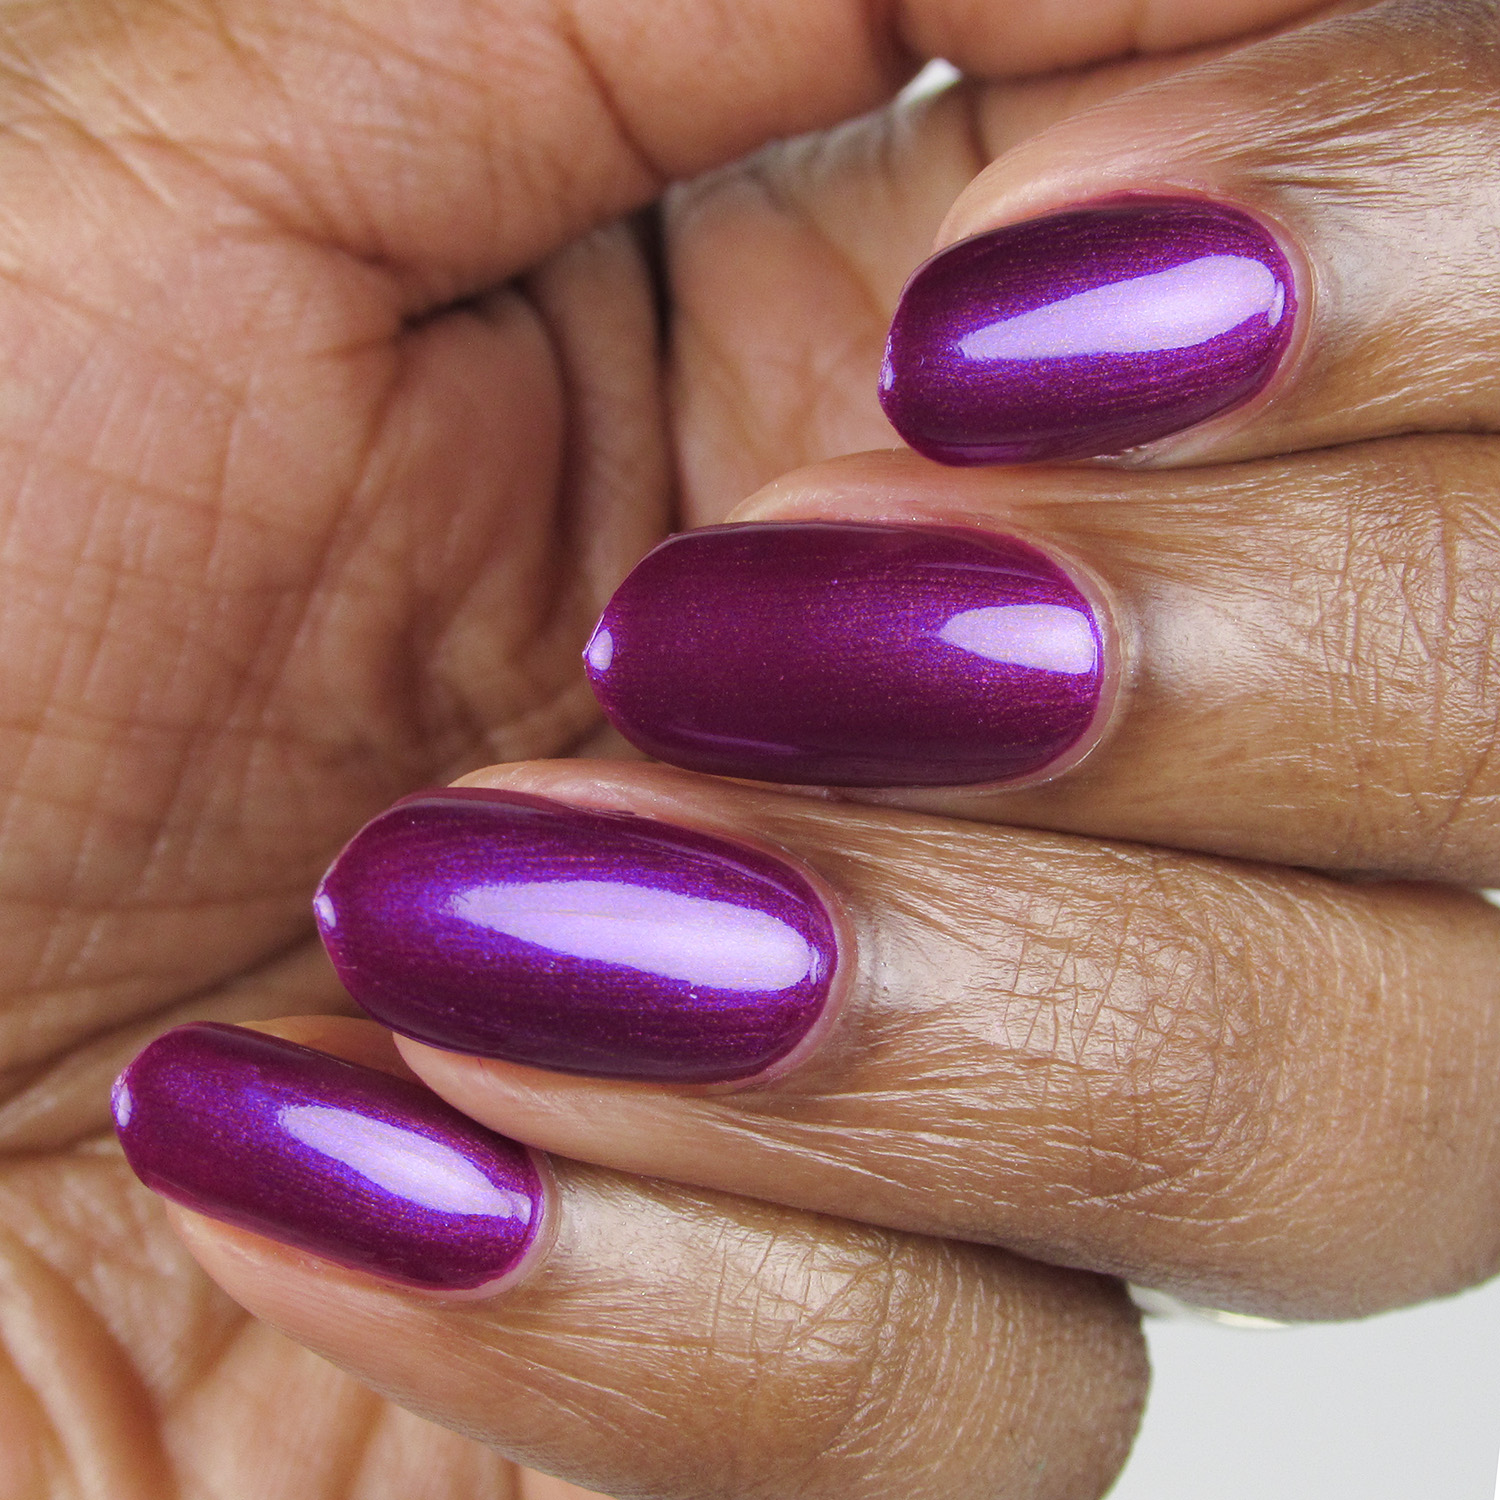 Conquest - angle - Vapid Lacquer - April 2018 - Spring release - purple - magenta shimmer